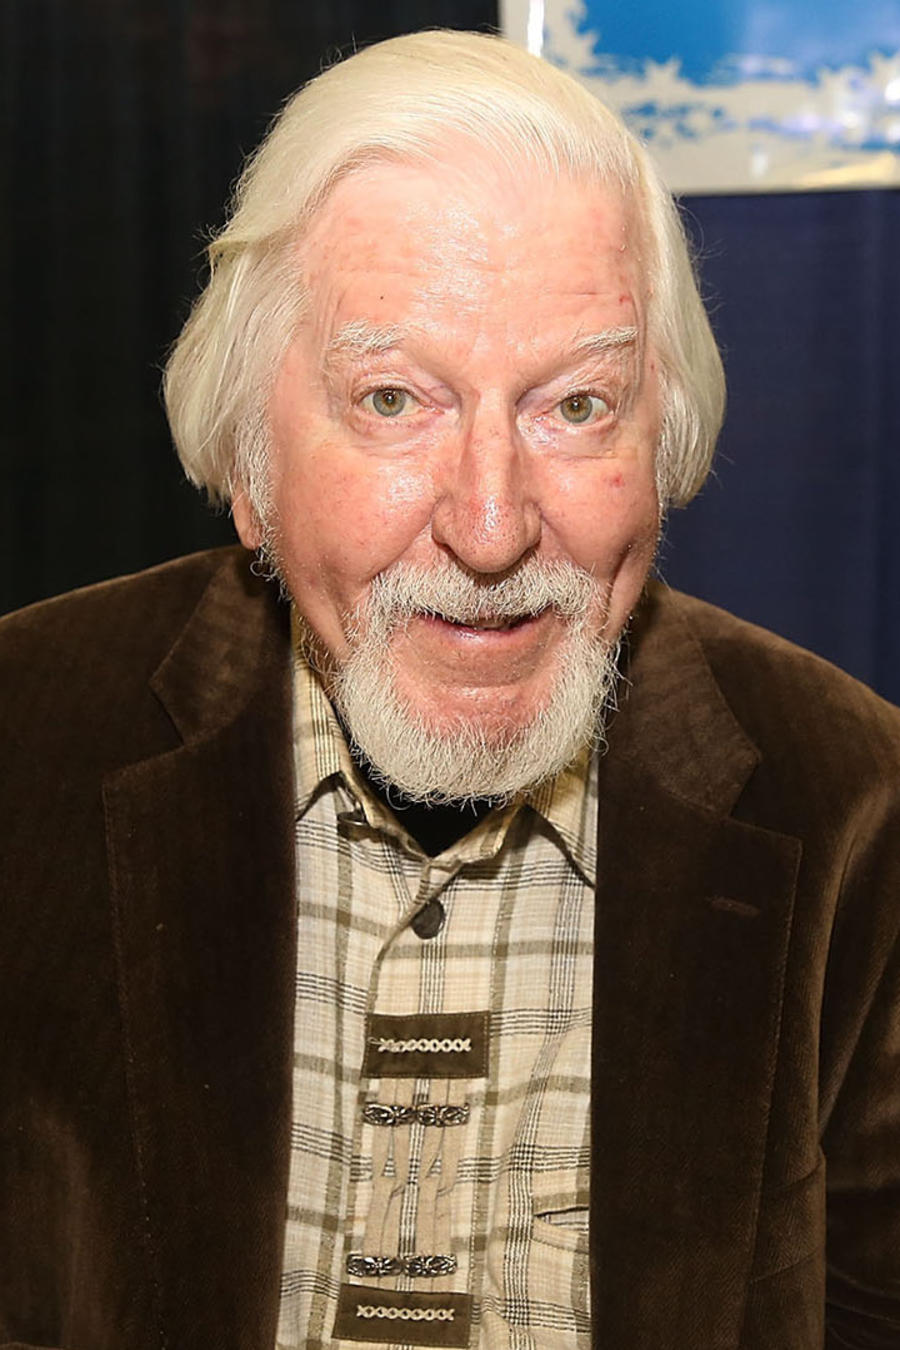 Sesame Street's Big Bird Puppeteer Caroll Spinney Diest at 85